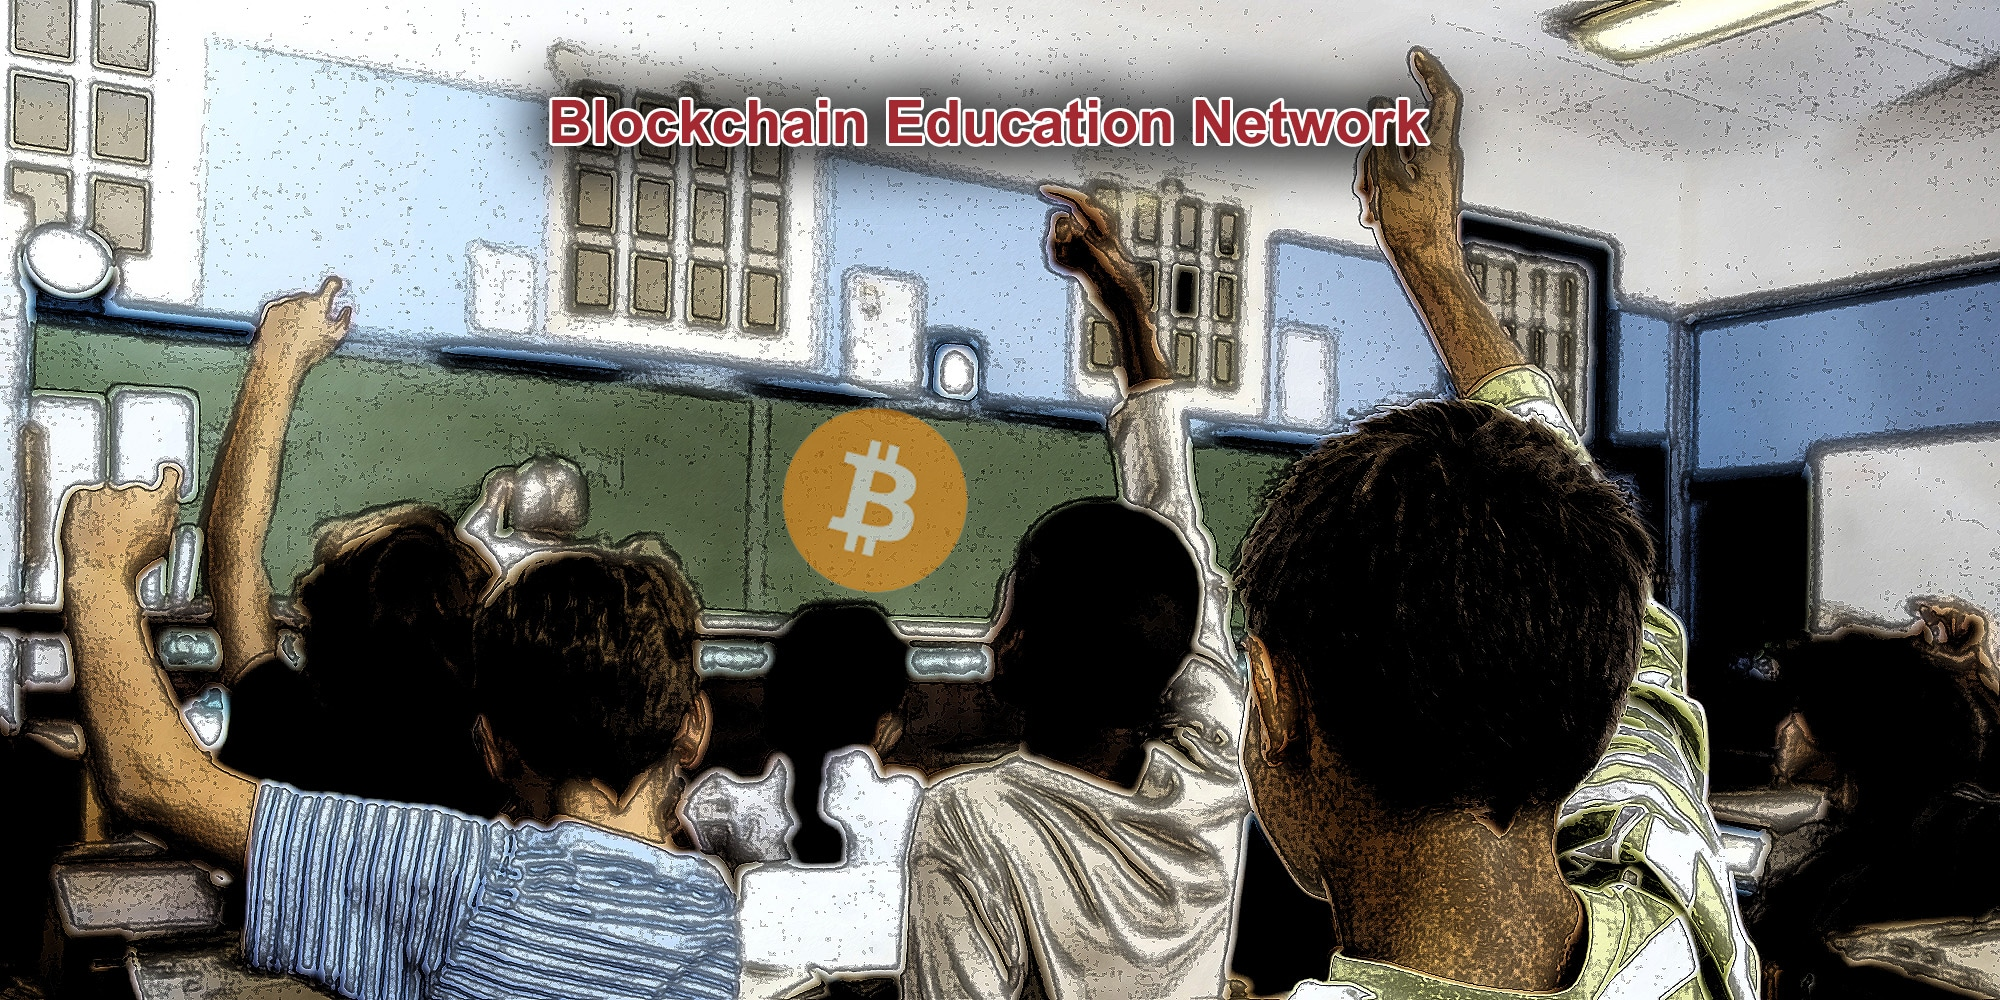 Blockchain-Education-Network.jpg